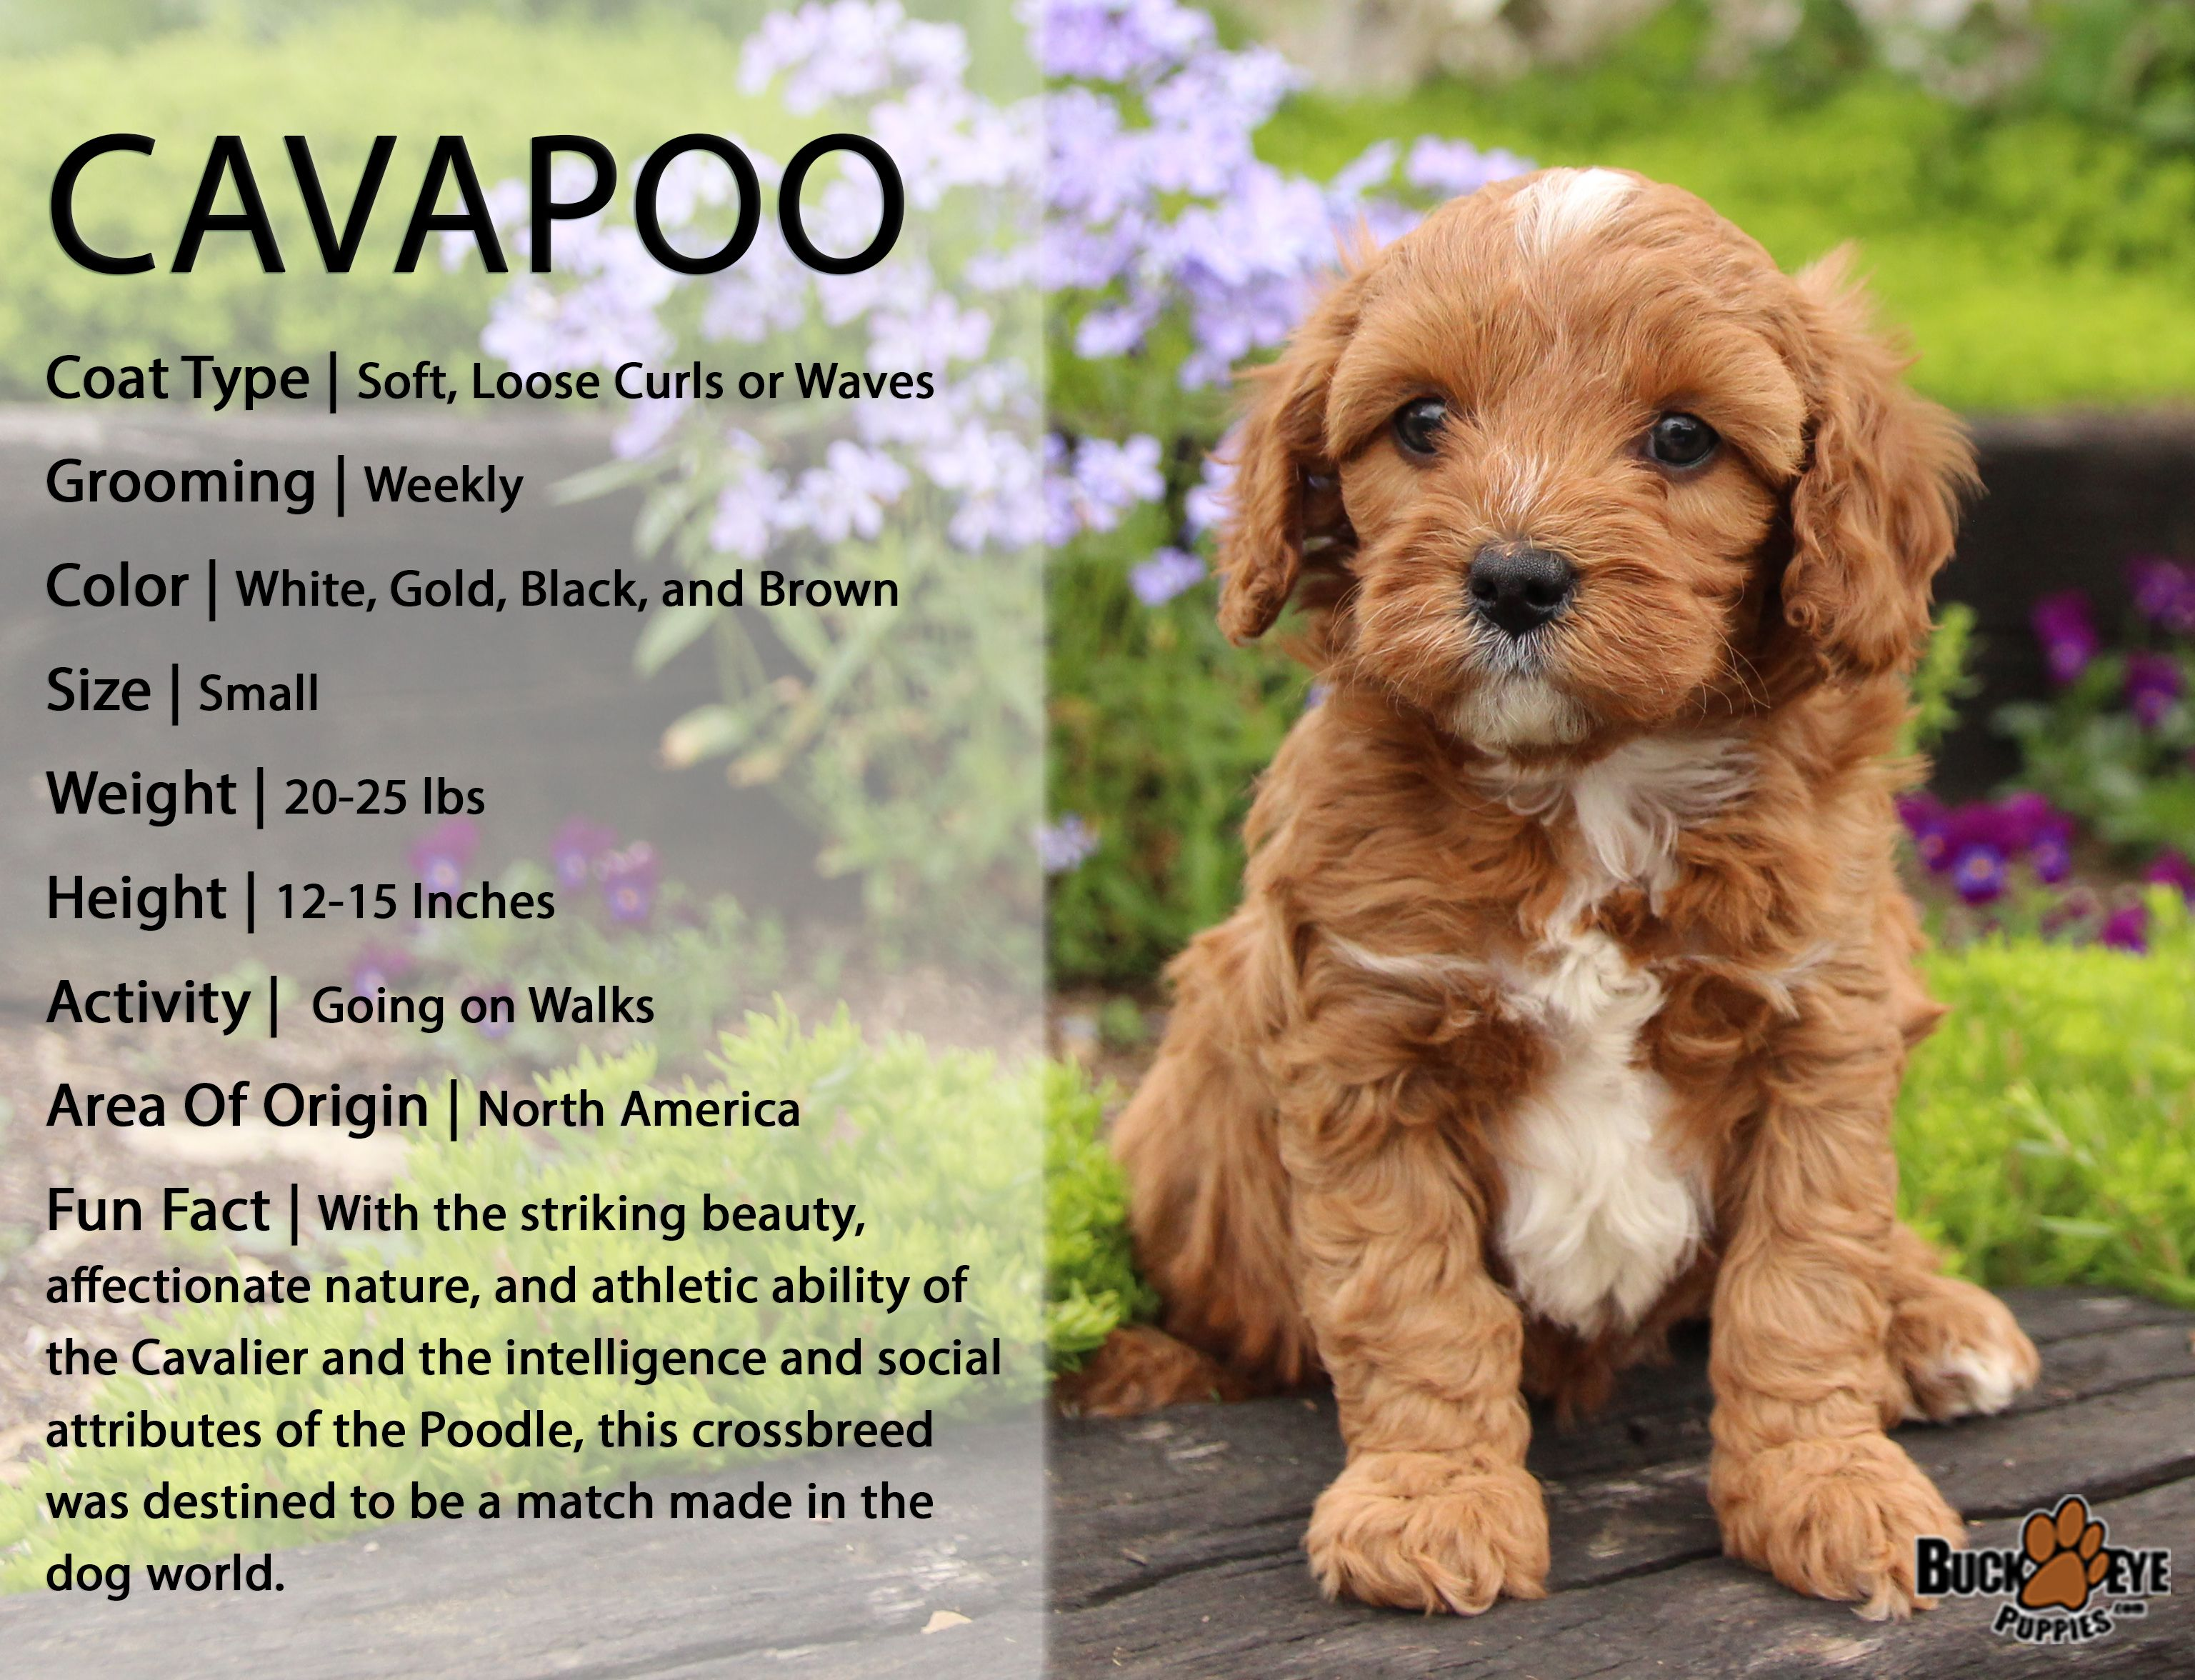 Breedoftheweek Cavapoo Pups Are Fluffy And Charming Companions The Cavapoo With Their Eagertoplease A Cavapoo Puppies Cute Dogs And Puppies Puppies